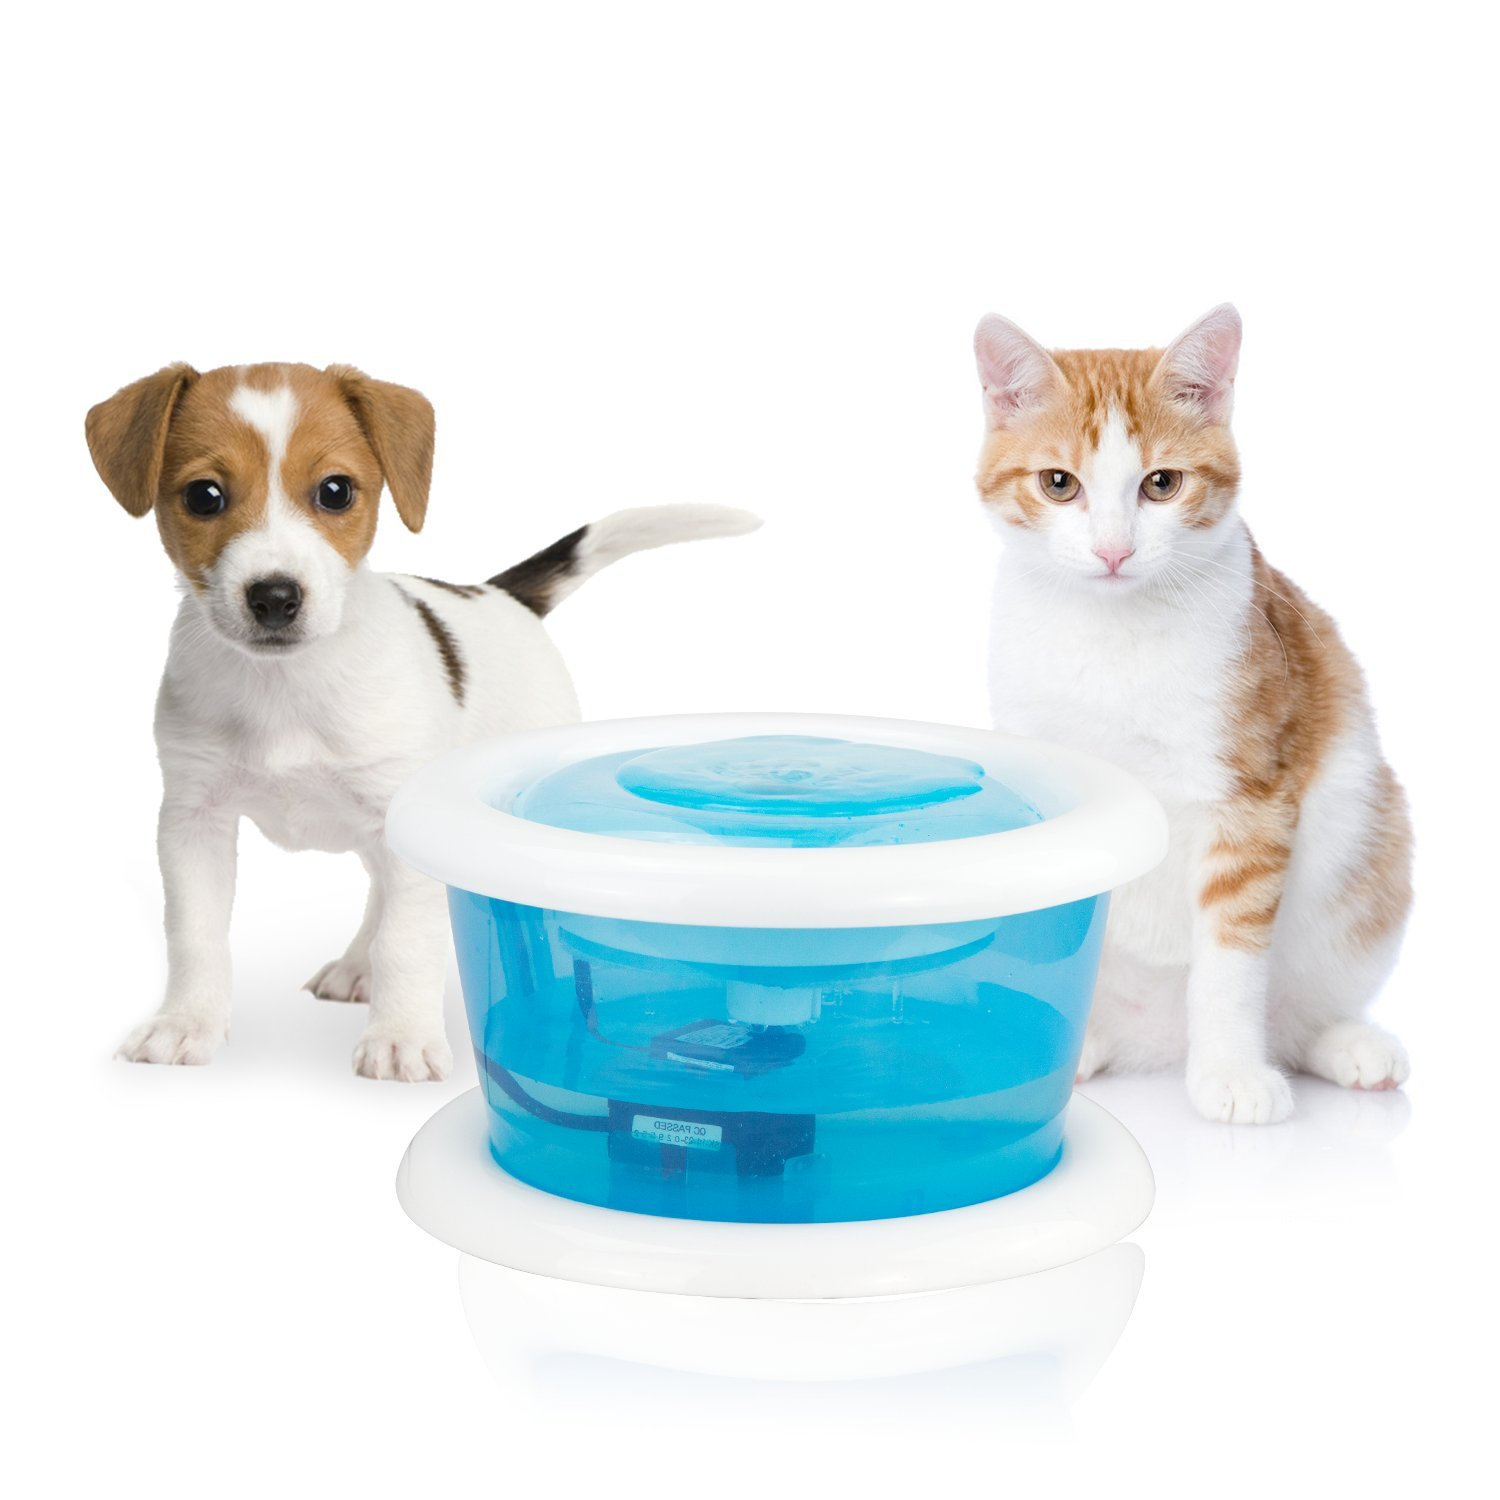 Amazon.com : Pet Fountain, Cat Water Fountain Bowl with Replaceable ...